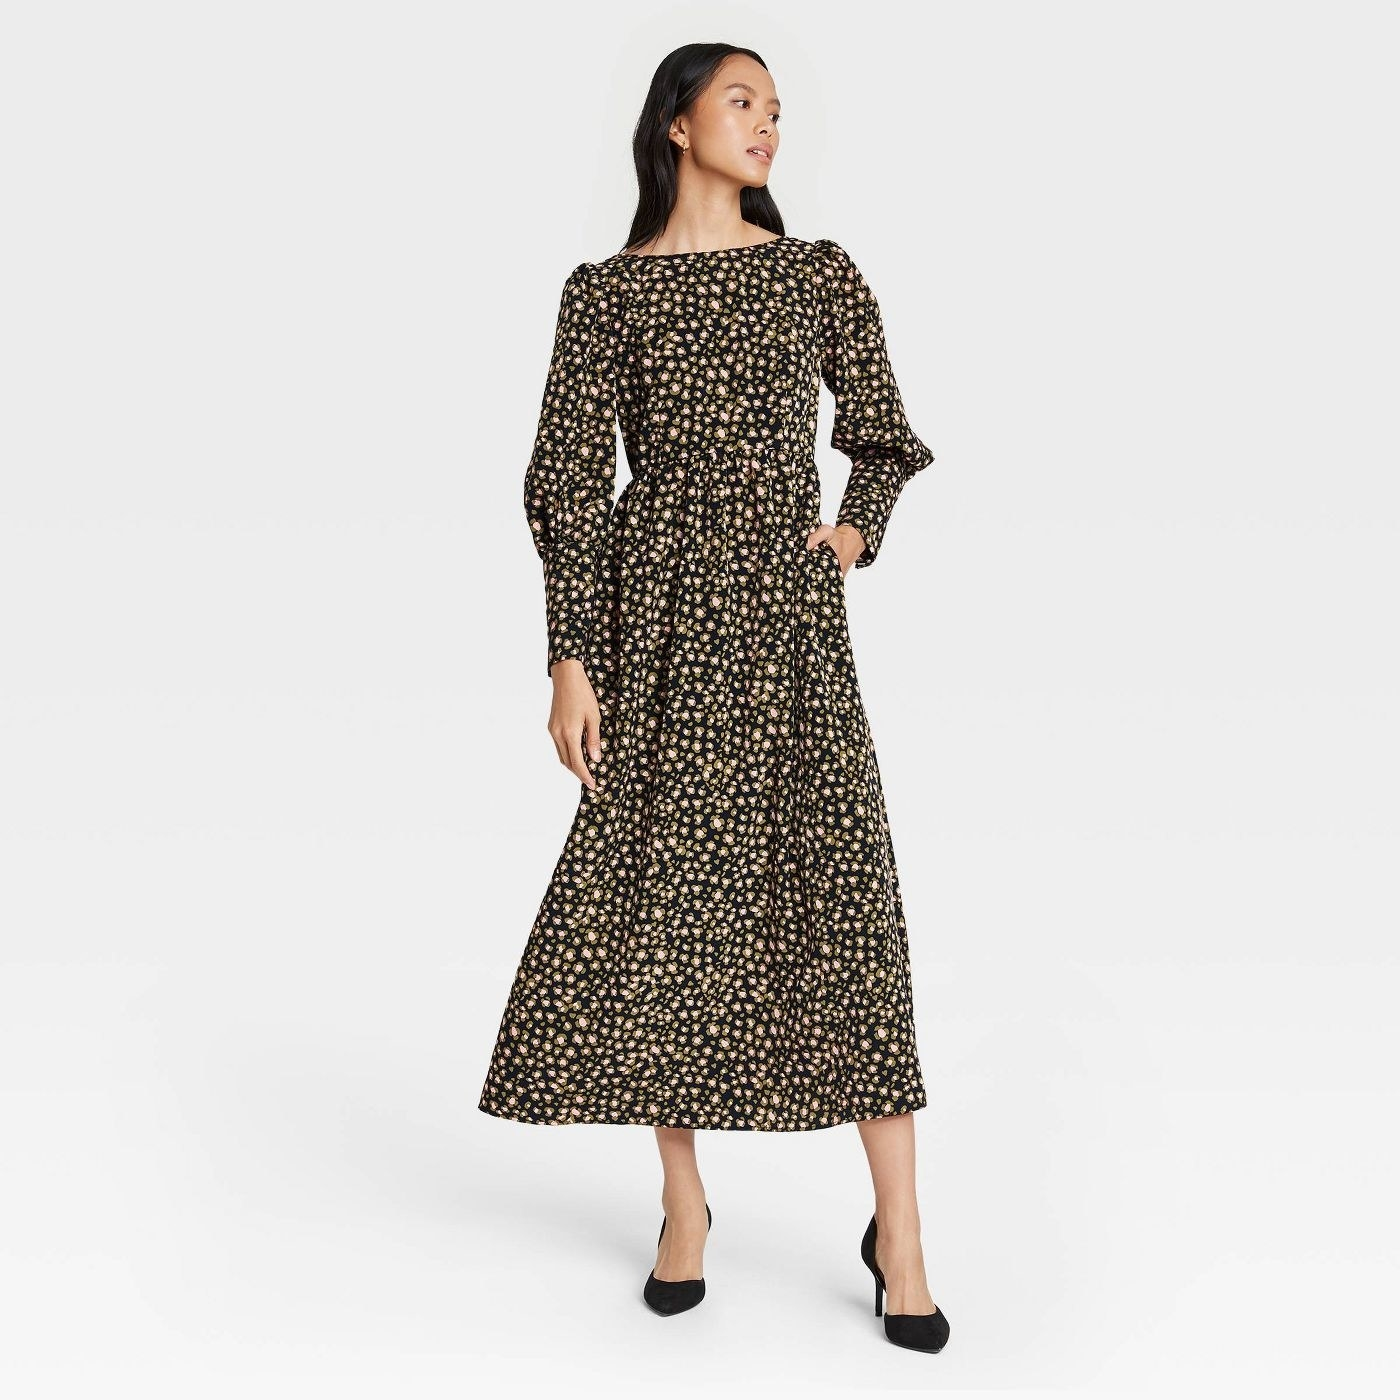 Model wearing black dress with a yellow dotted pattern